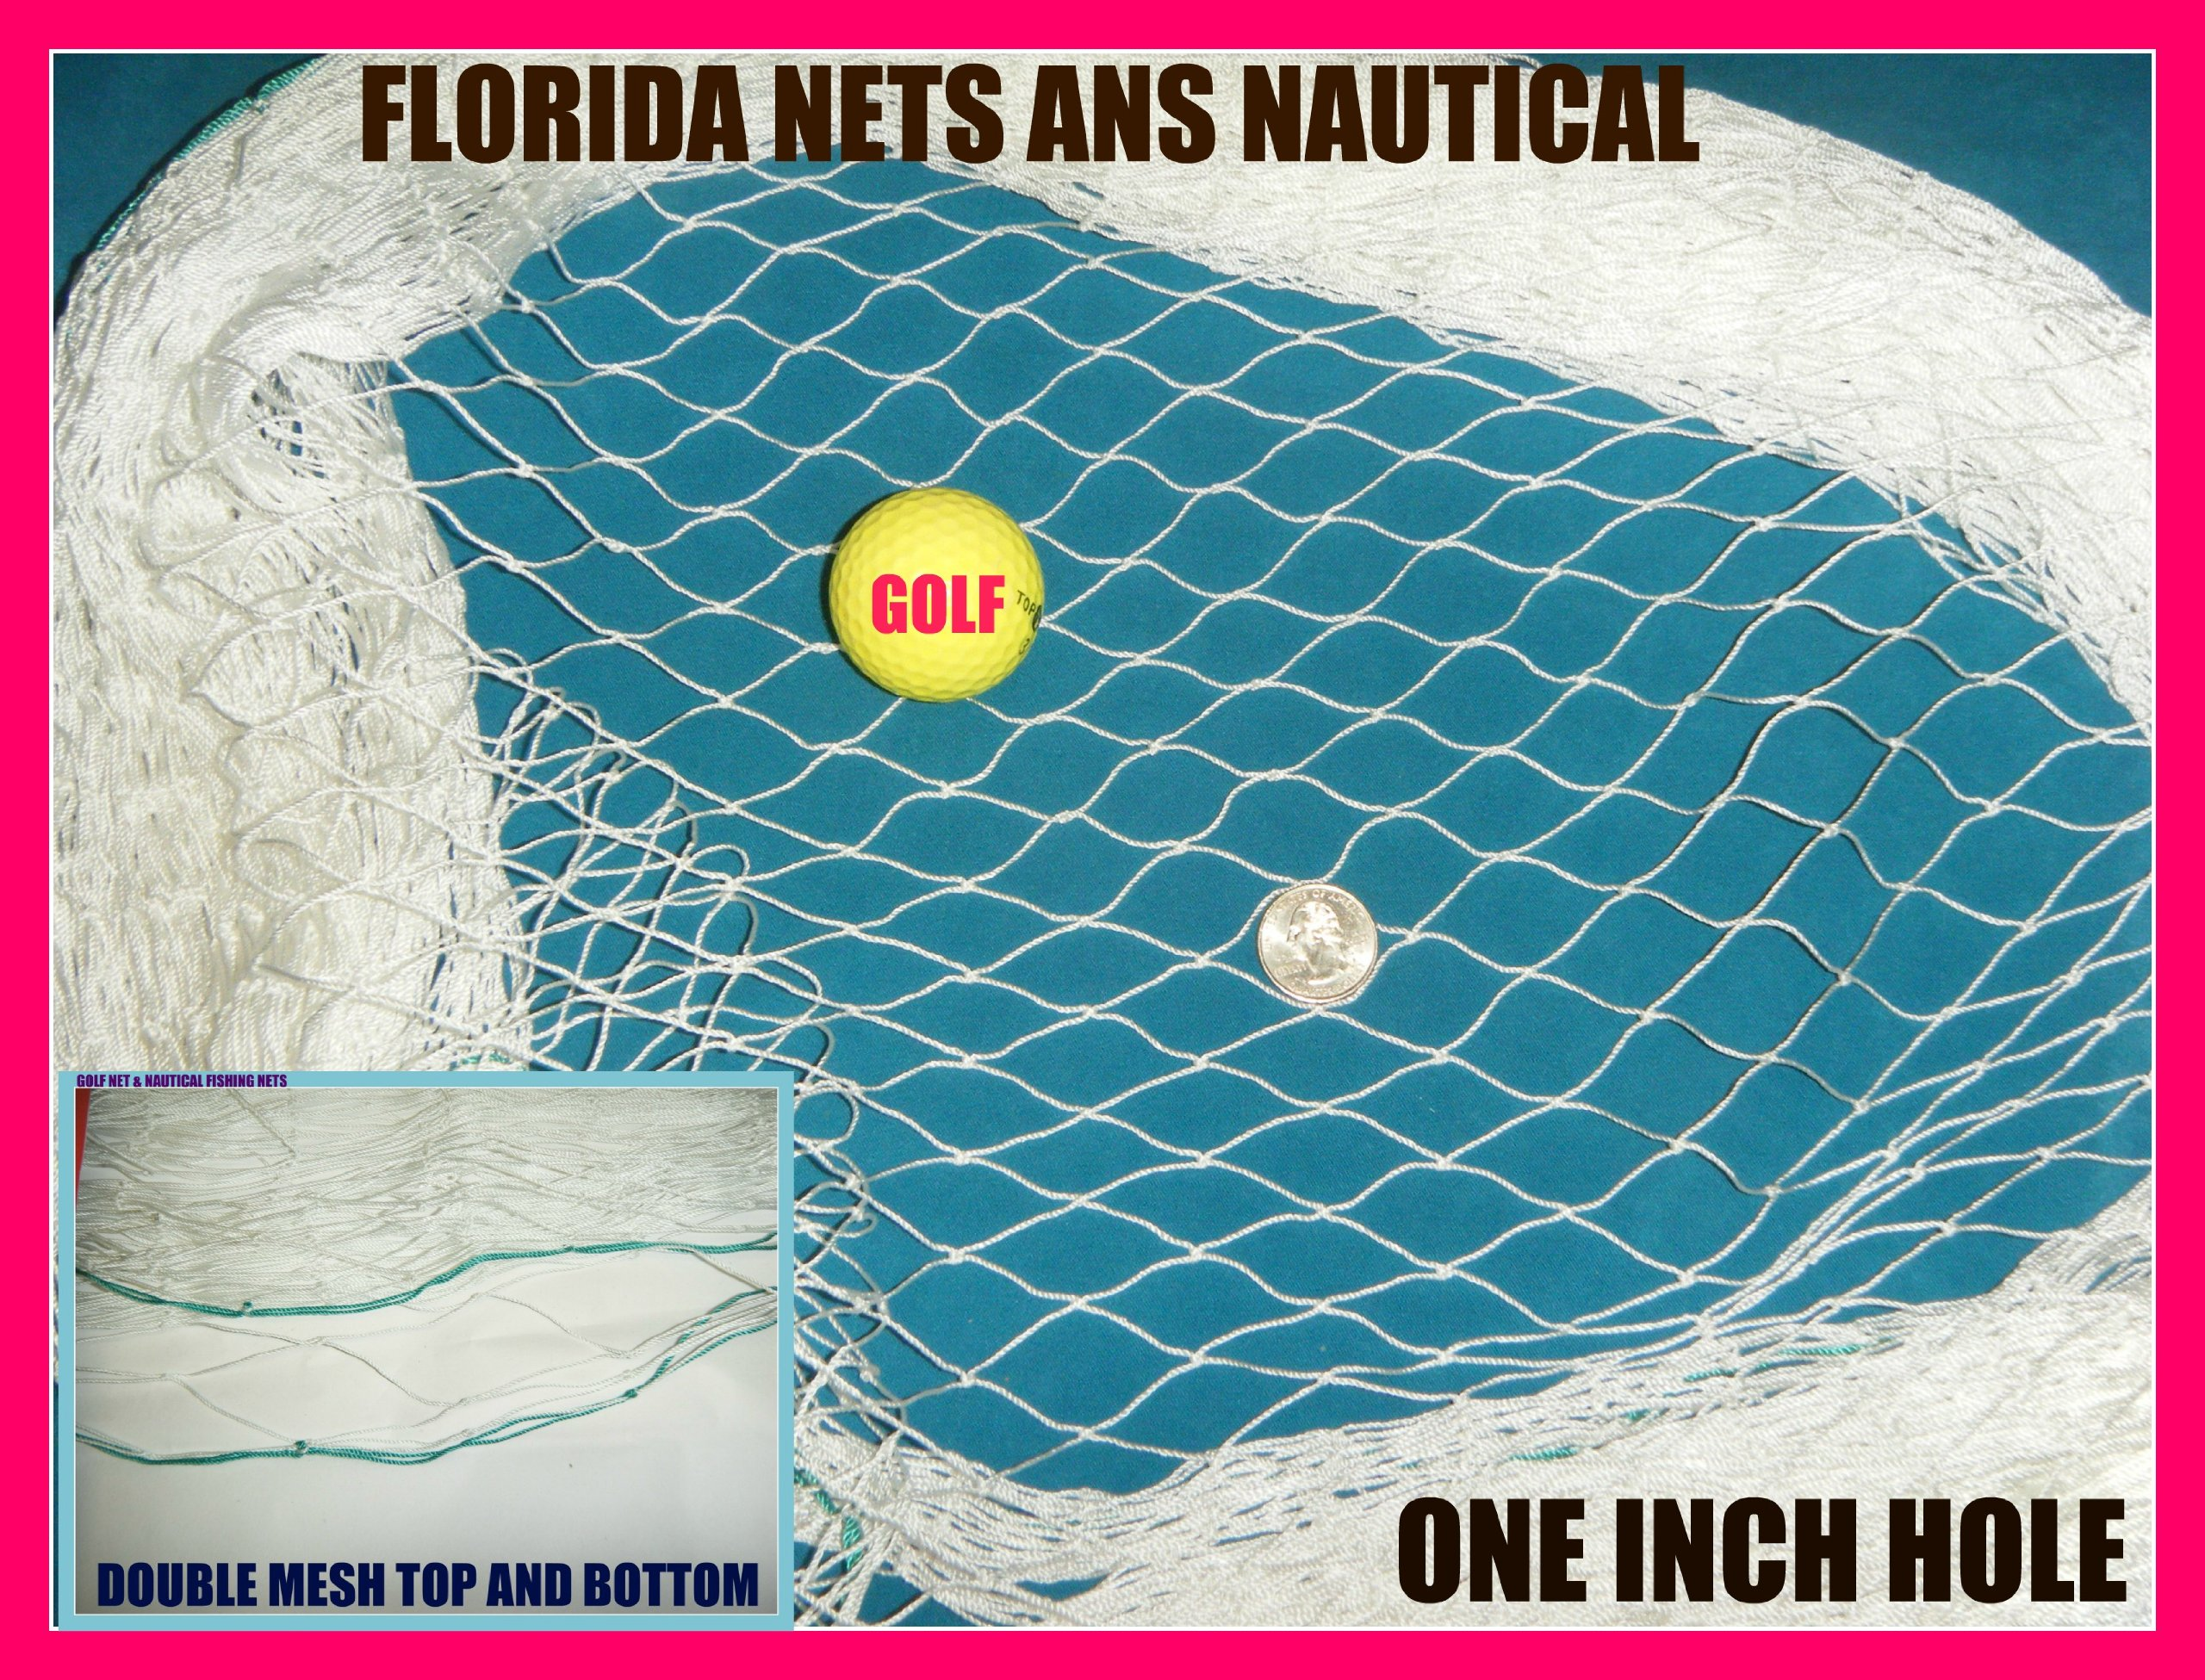 30 X 25 Fish Net, Fishing Net, Netting for Golf Backstop, Hockey, Barrier, Cage